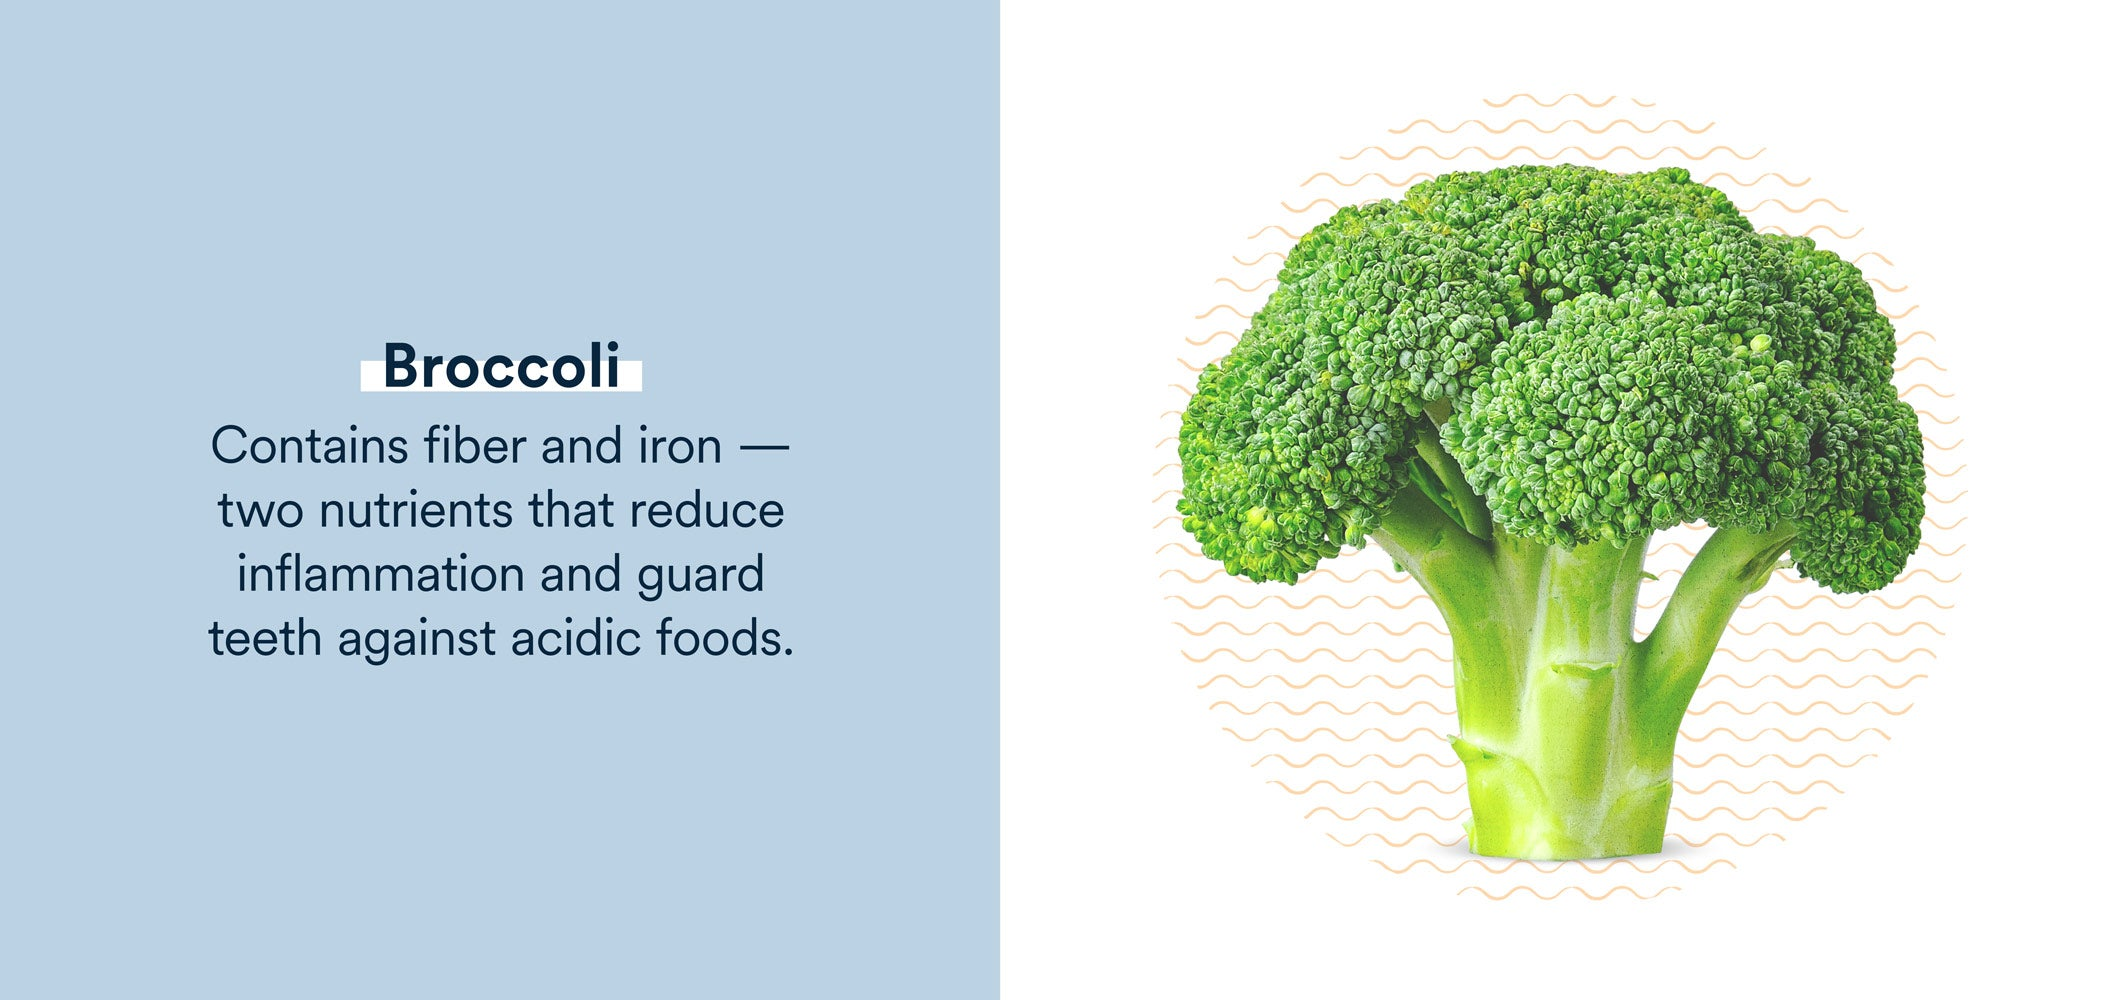 broccoli contains nutrients that reduce inflammation